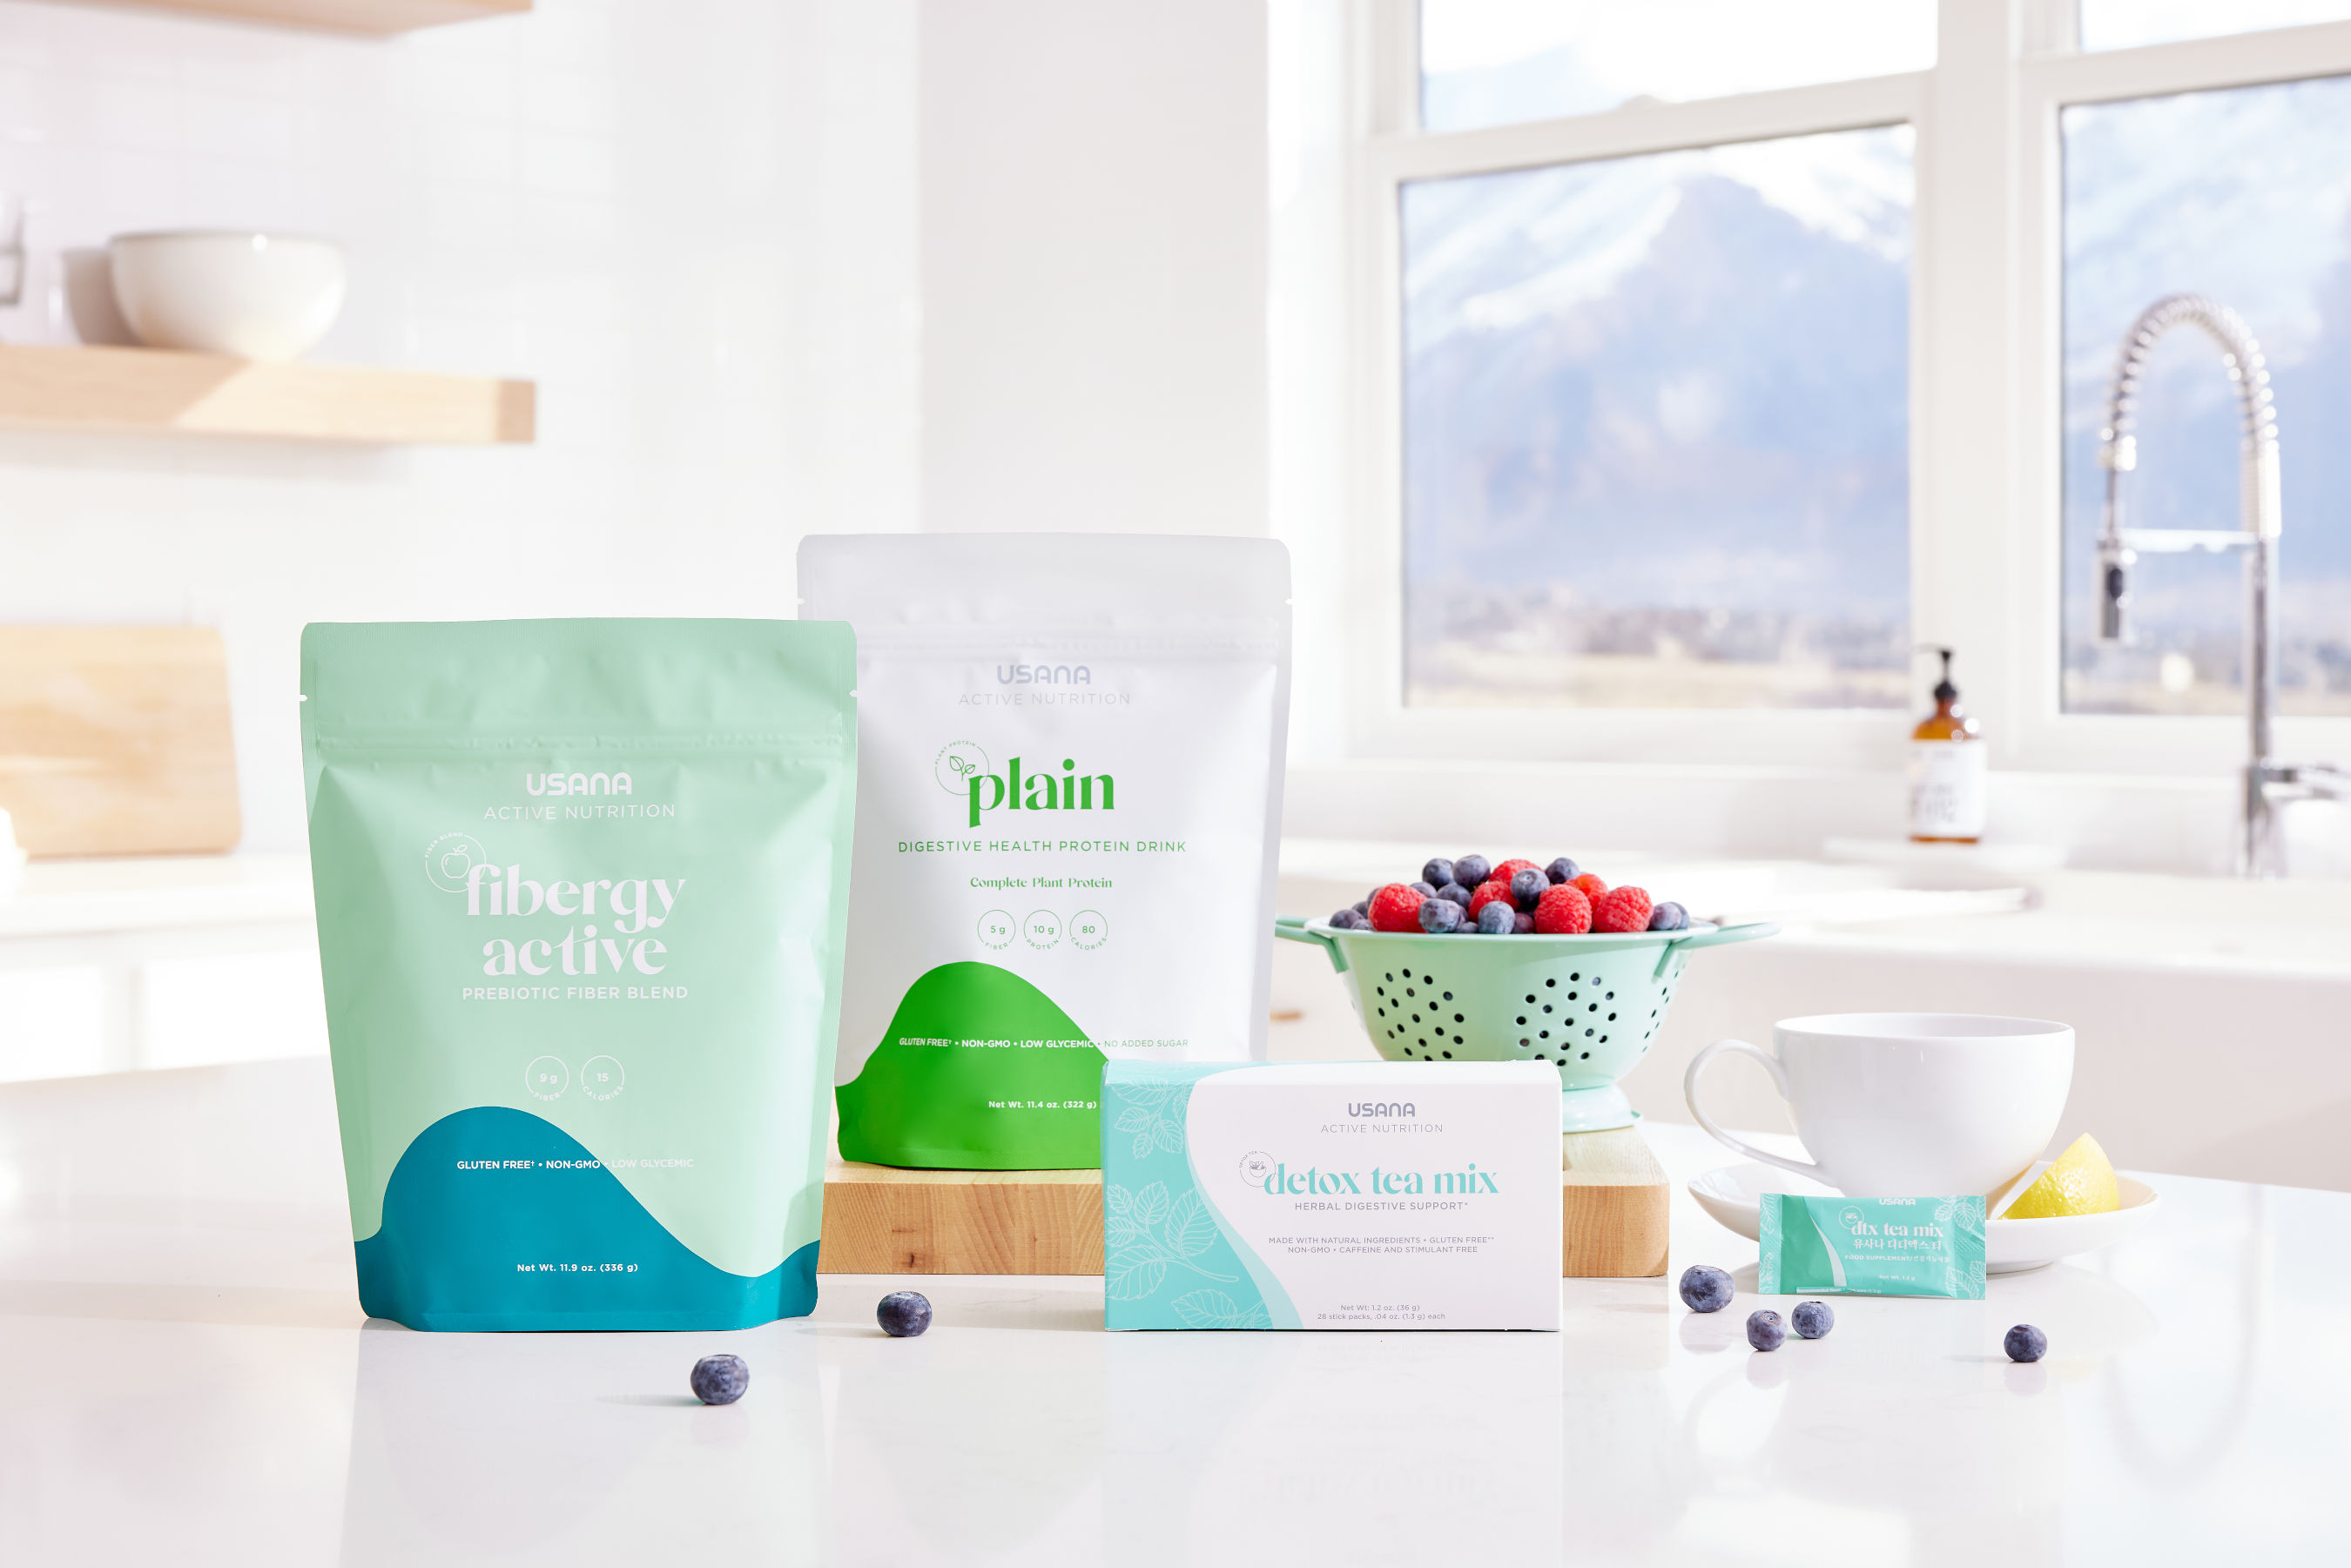 Love Your Body. Change Your World. USANA Proudly Launches New Product Line